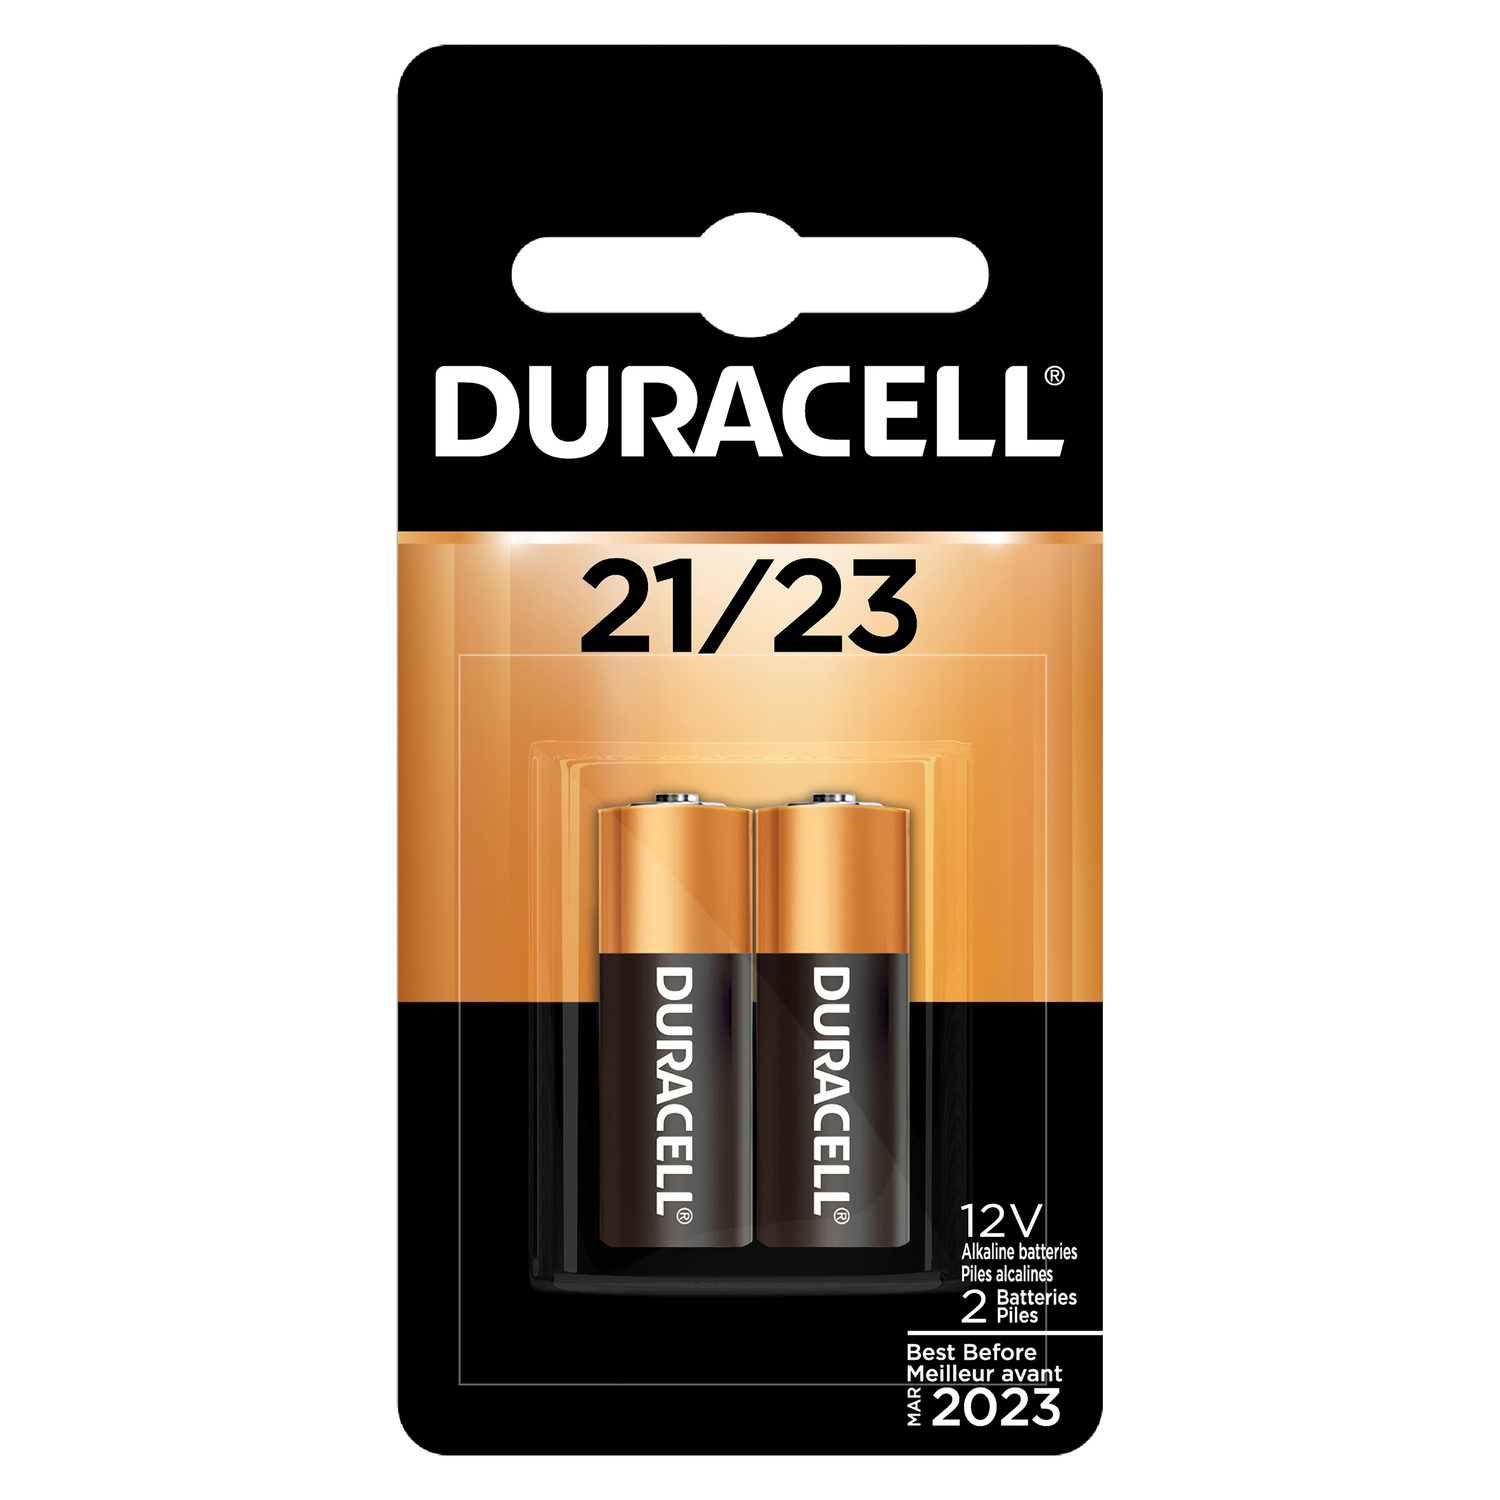 Duracell  Alkaline  12-Volt  Security and Electronic Battery  21/23  2 pk